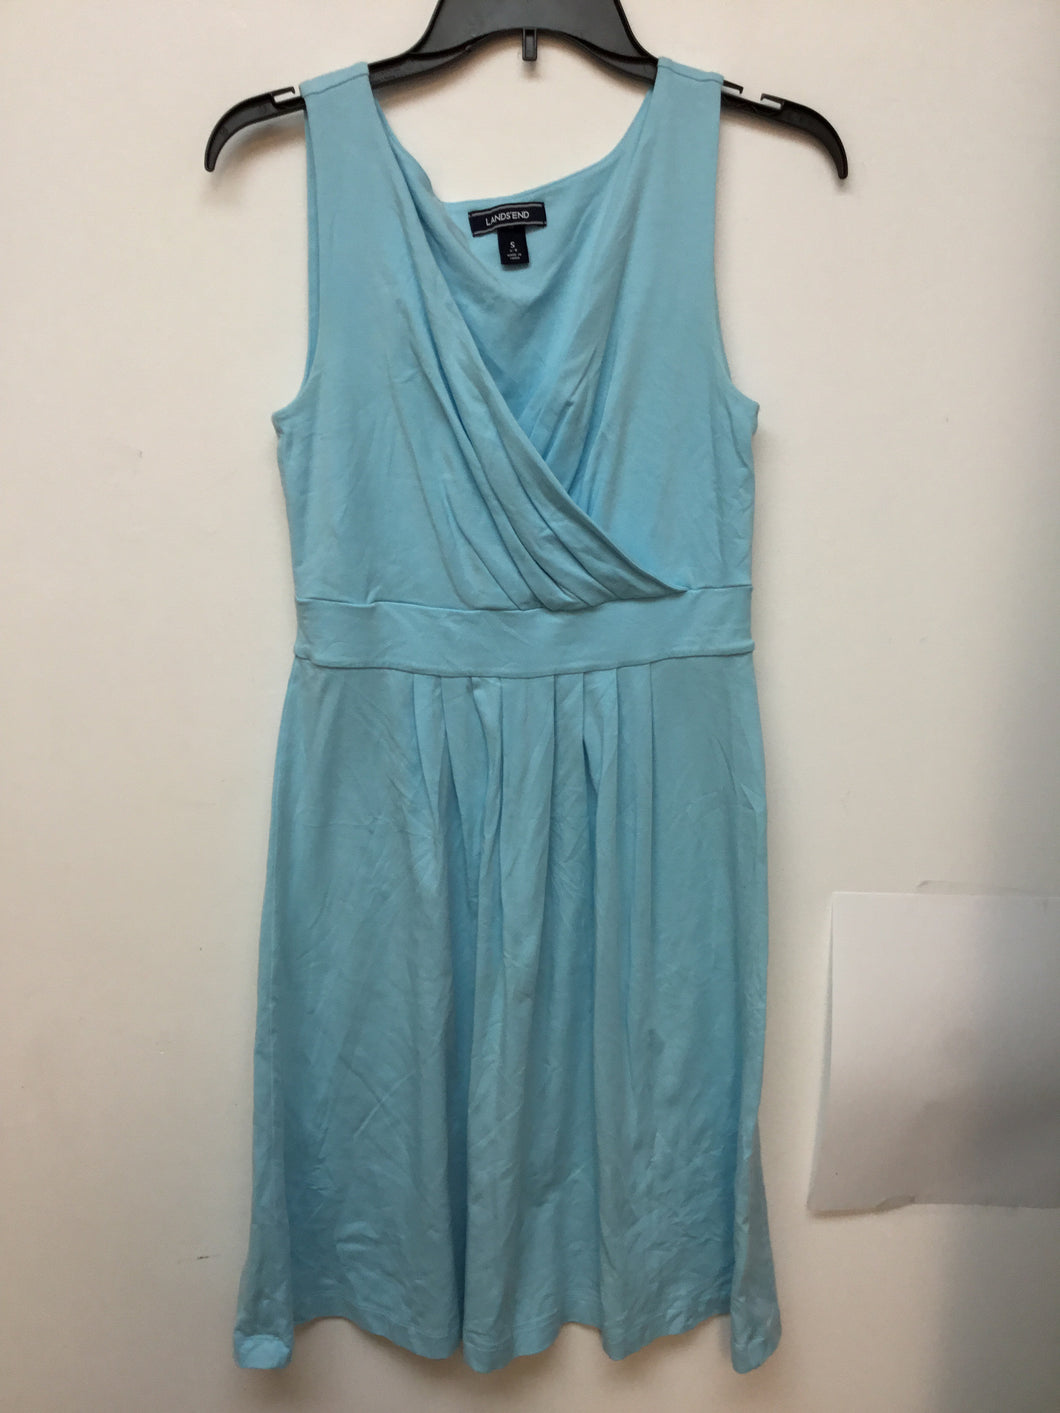 Lands End sky blue dress size small